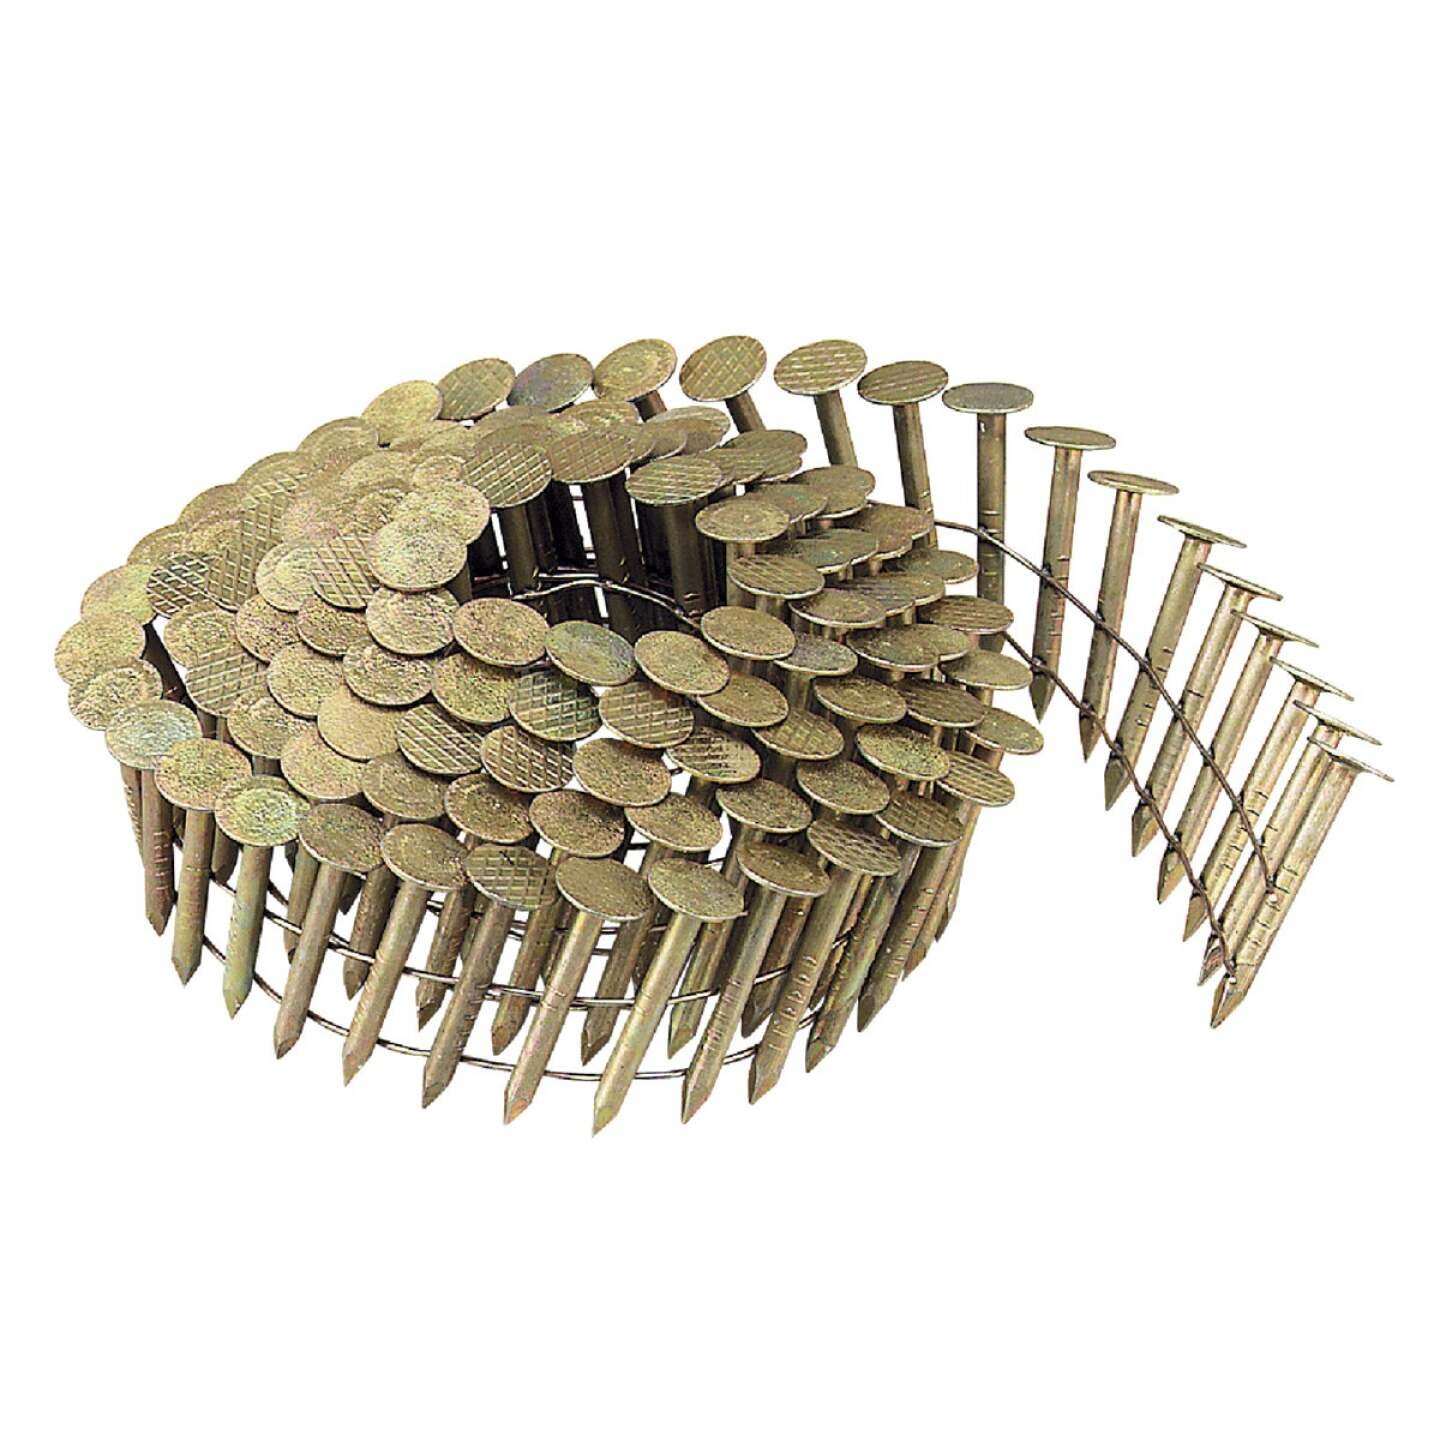 Bostitch 15 Degree Wire Weld Galvanized Coil Roofing Nail, 1 In. x .120 In. (7200 Ct.) Image 1